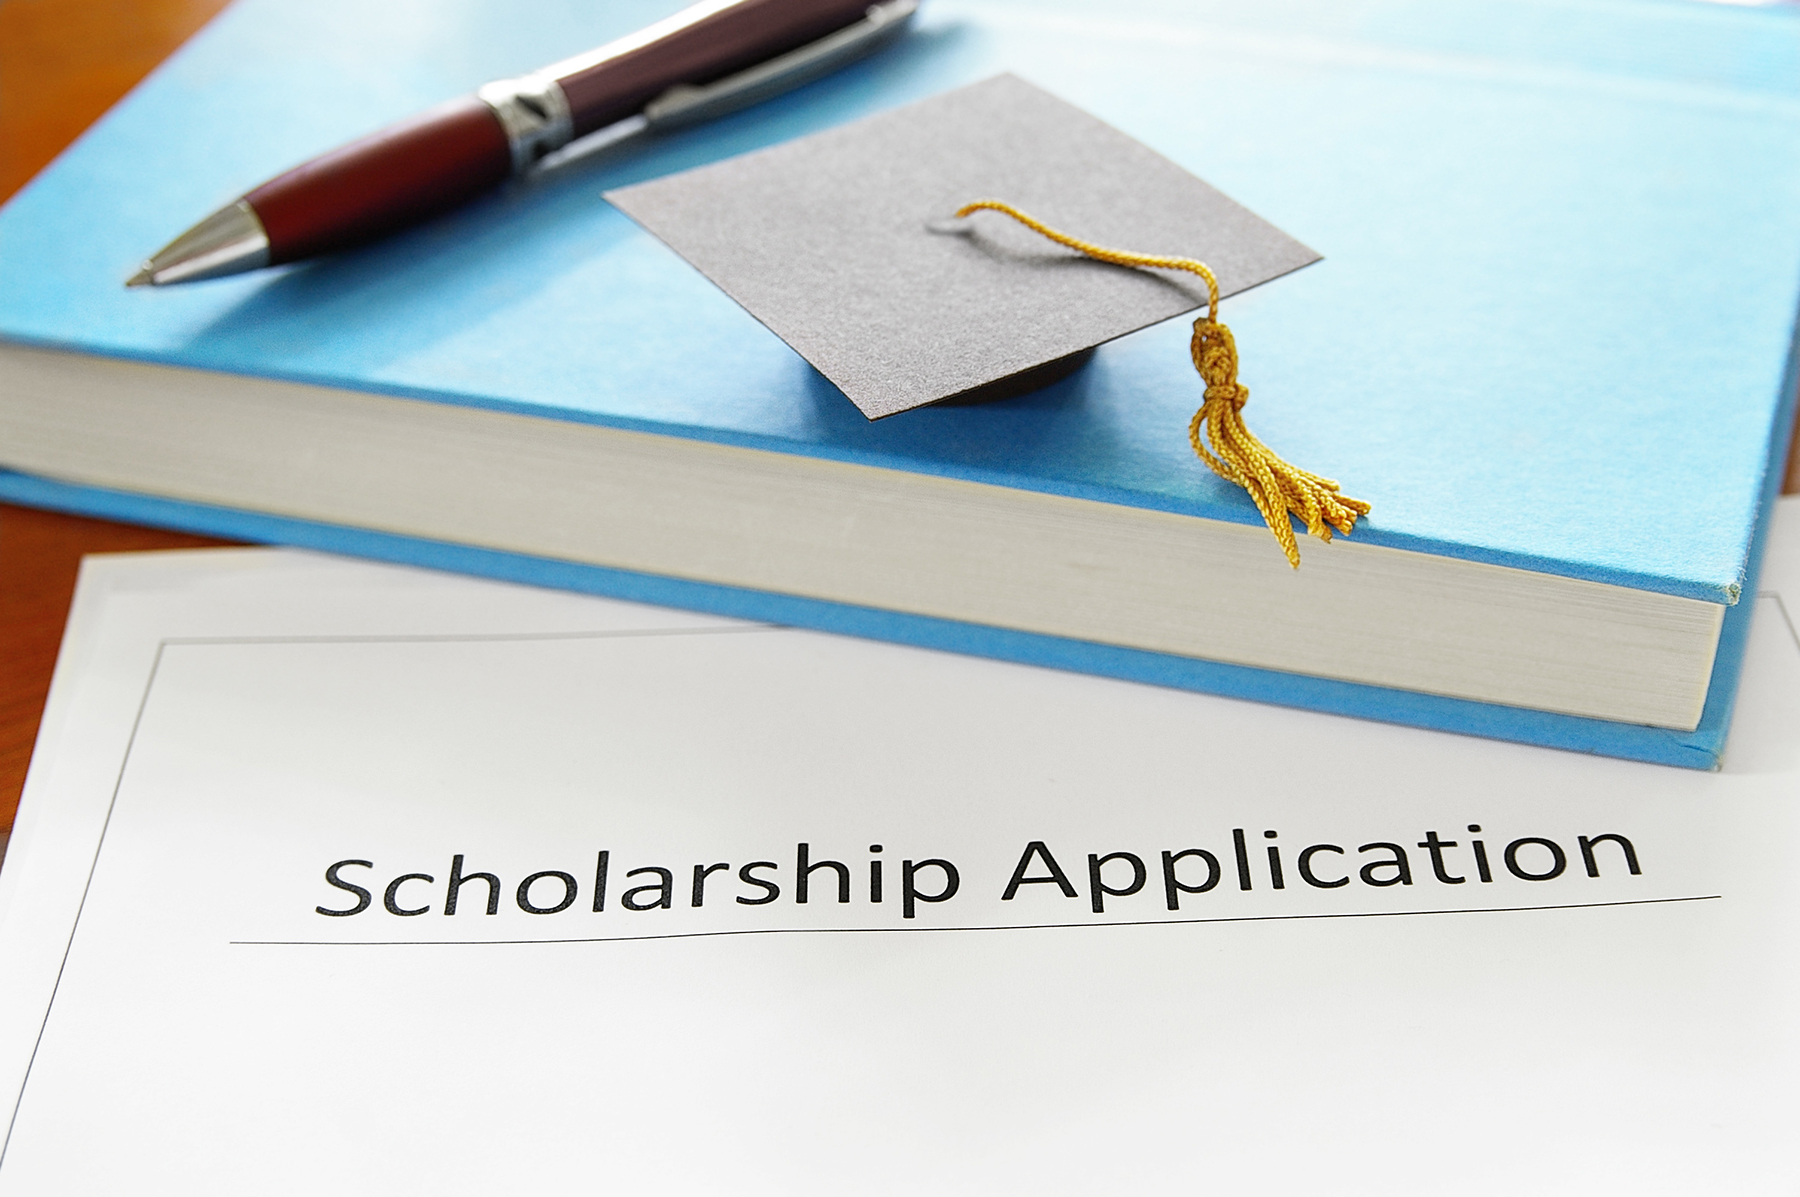 Scholarship application form next to book